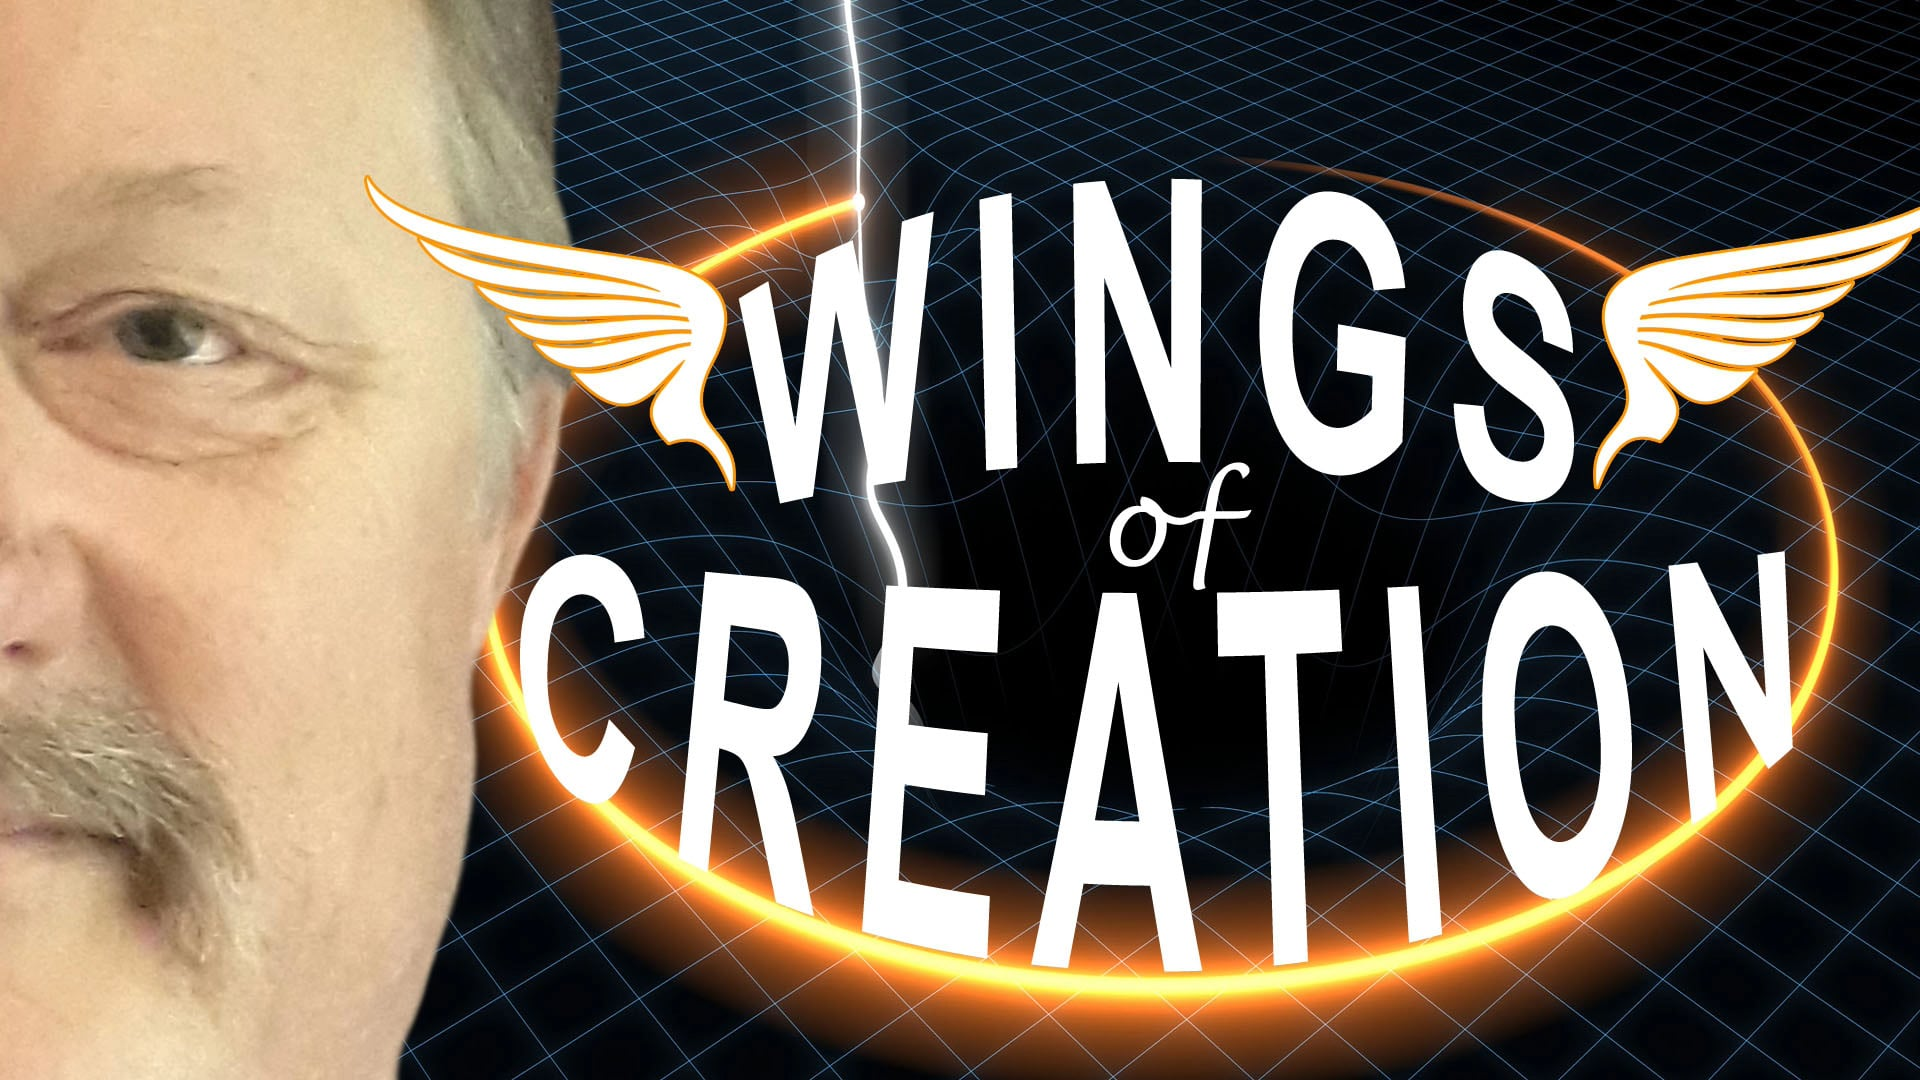 The Wings of Creation: The Key Theory